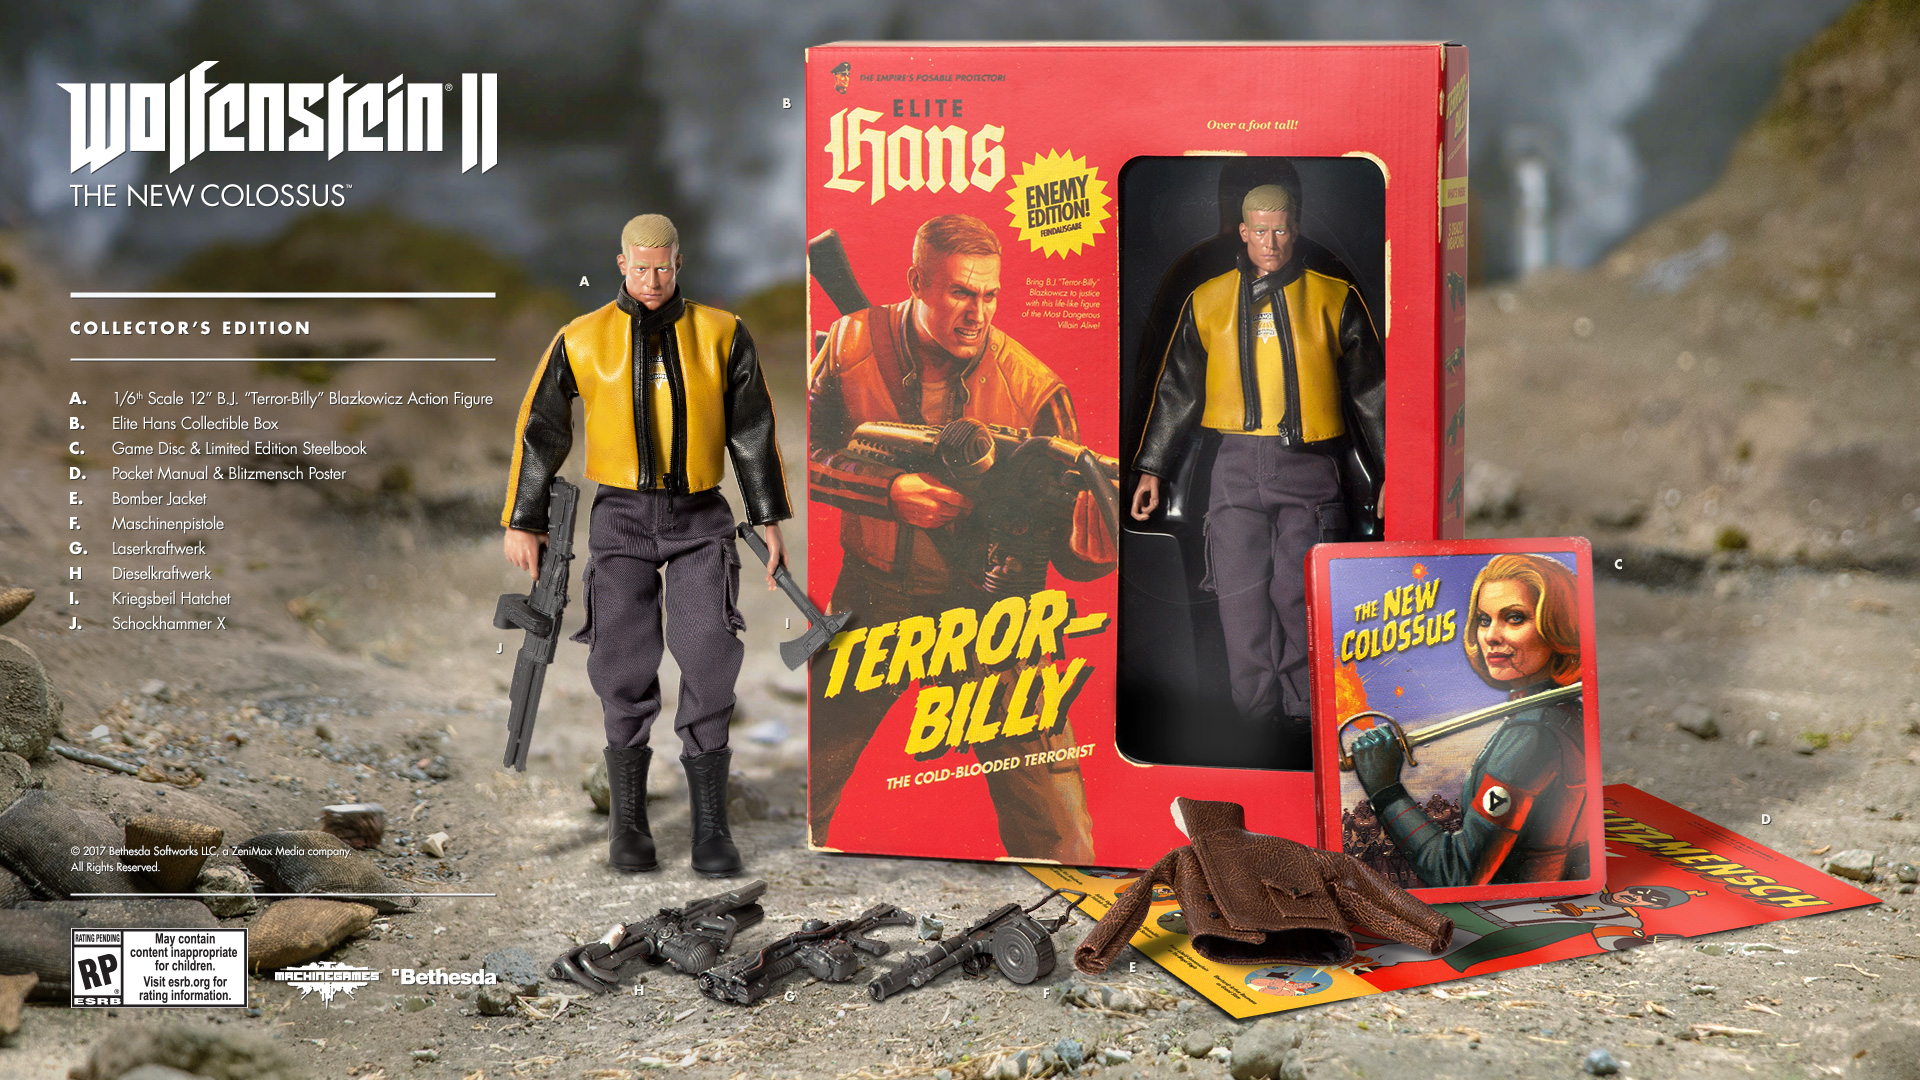 Terror Billy To Get Packed In With Exclusive Wolfenstein